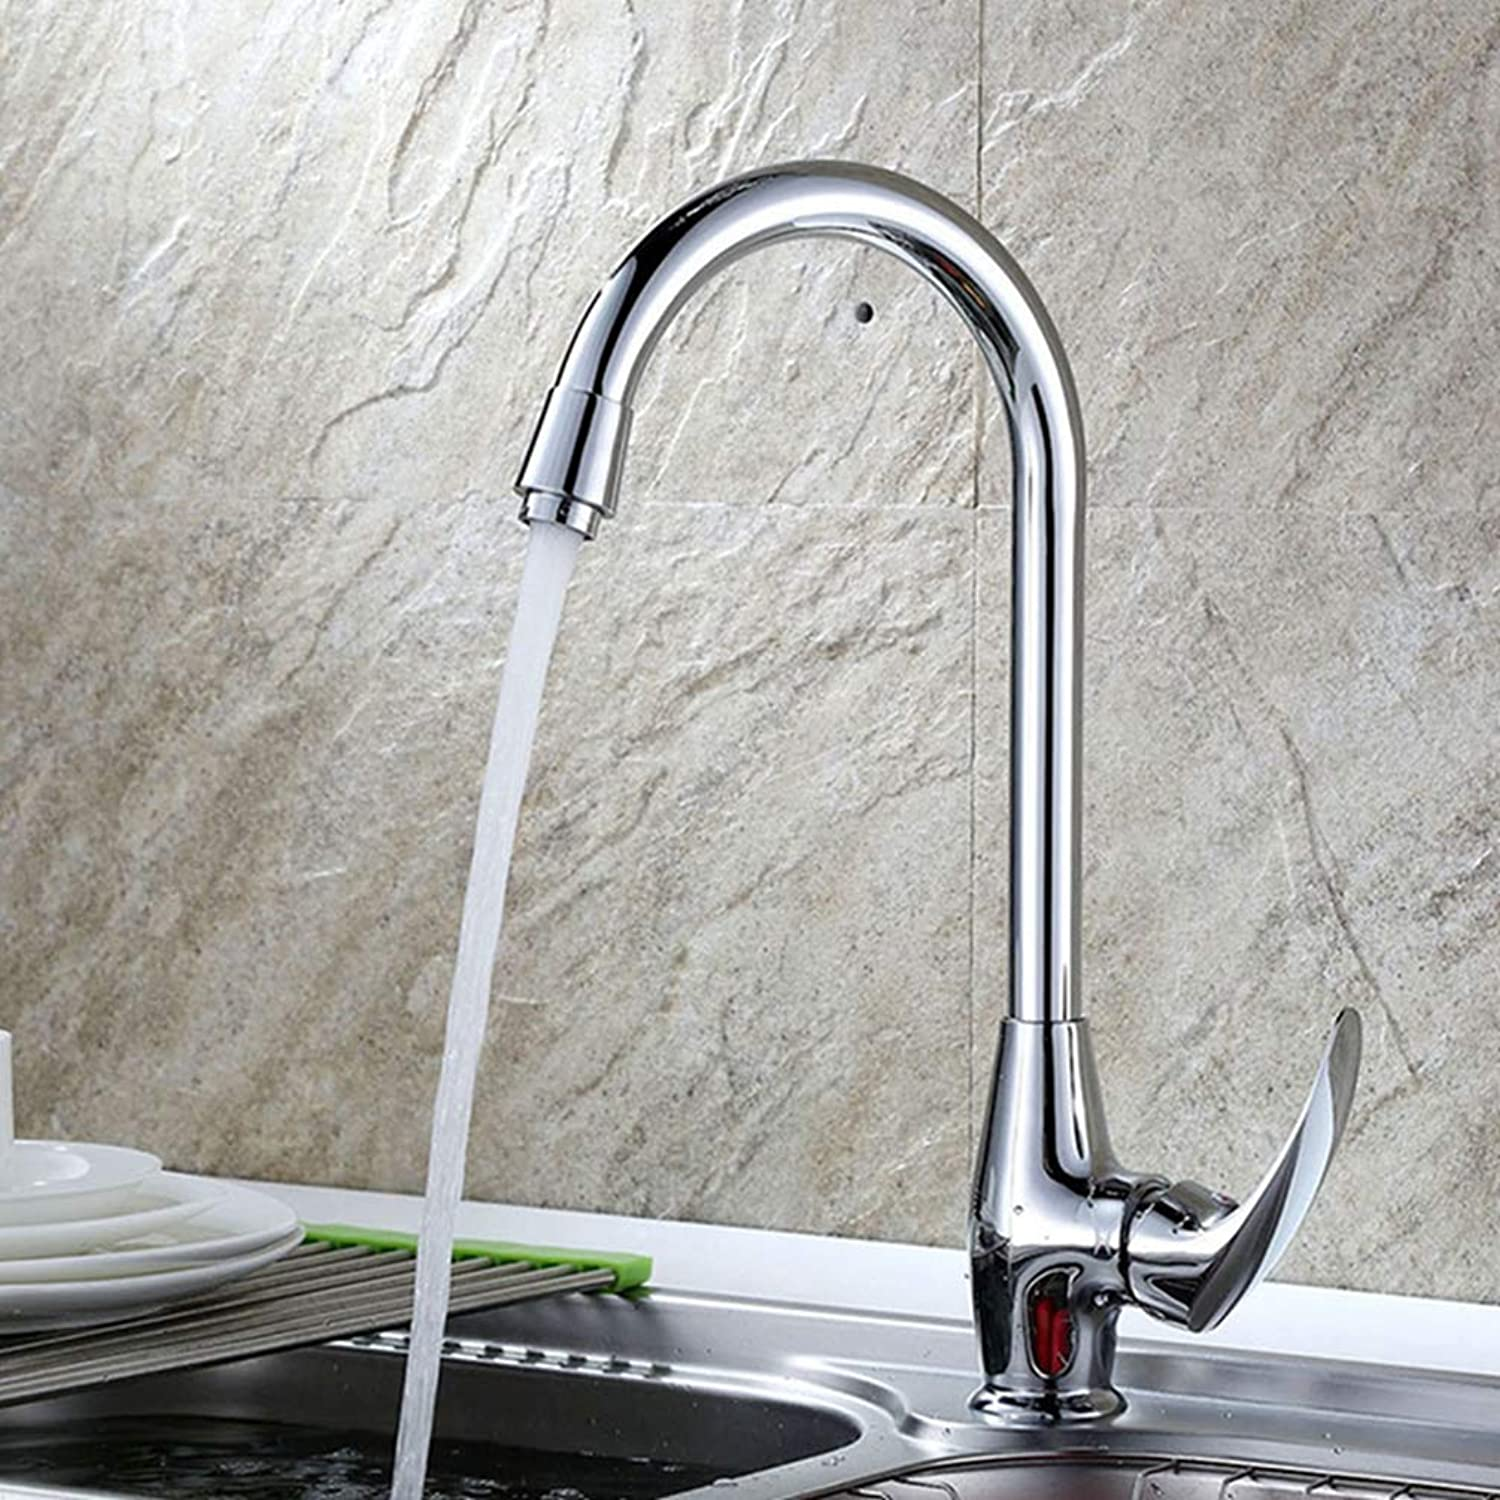 FZHLR Brass Chrome Kitchen Faucet hot and Cold Mixer taps Sheep Handle Basin Faucet Deck Mounted Sink Faucet